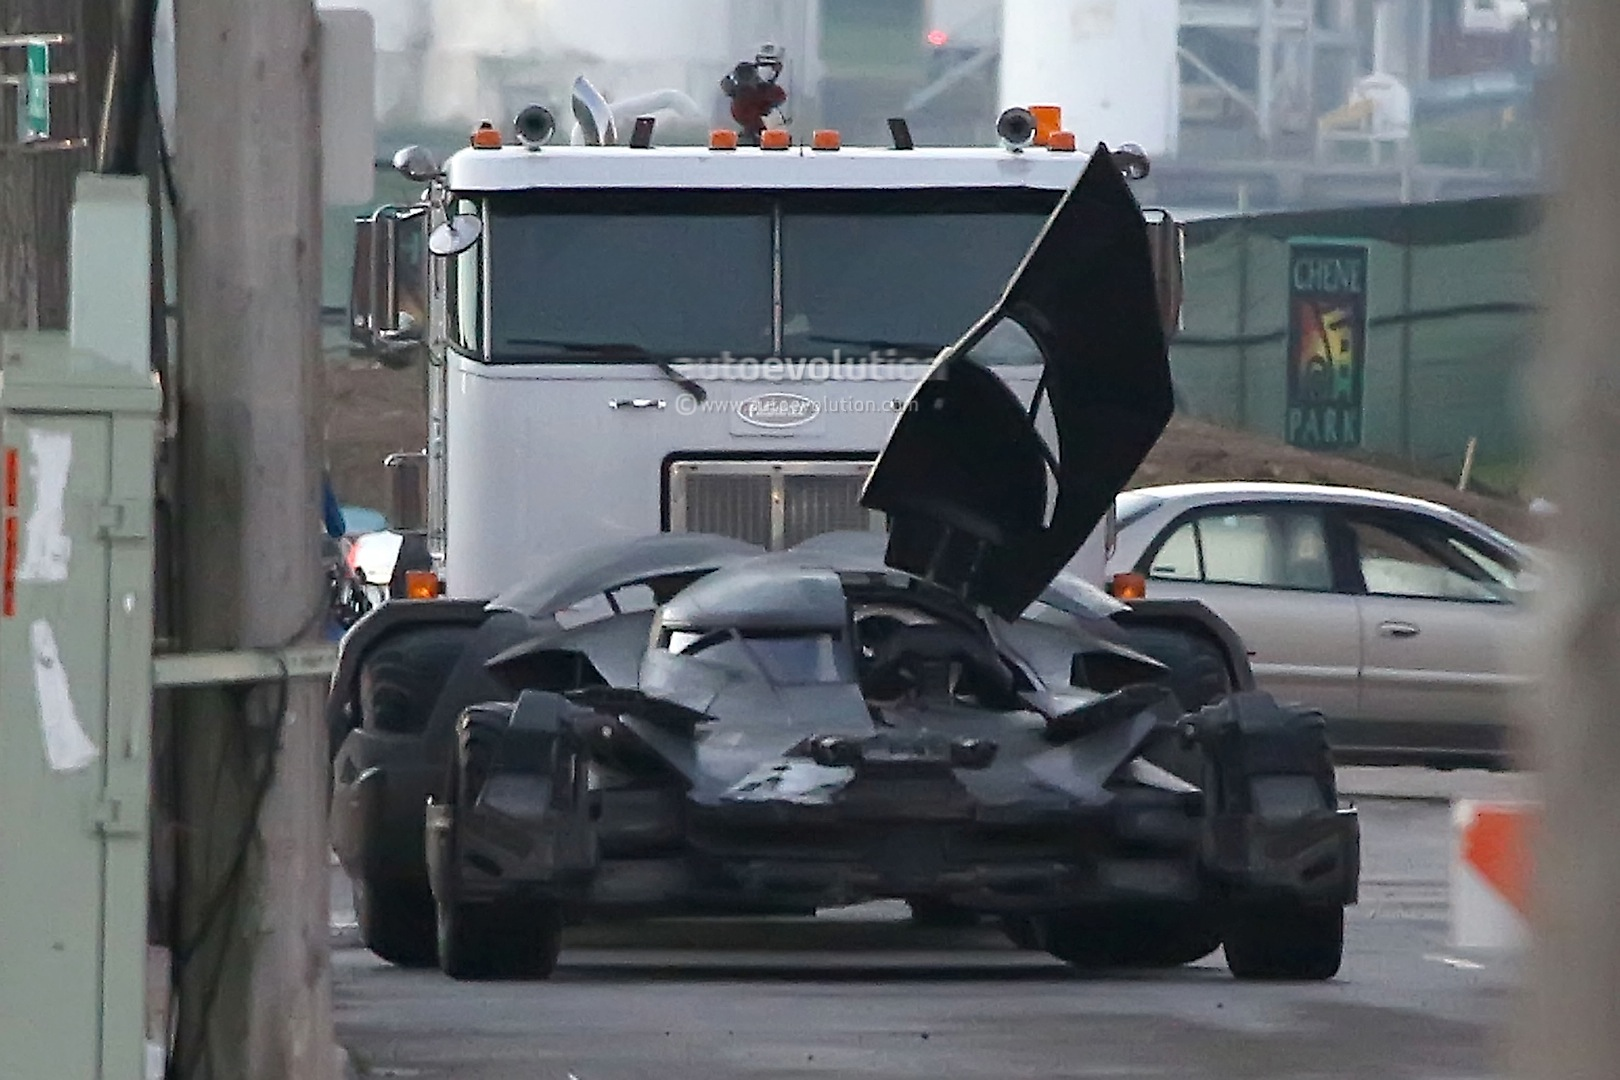 batmobile from new batman vs superman movie revealed during detroit shooting autoevolution. Black Bedroom Furniture Sets. Home Design Ideas